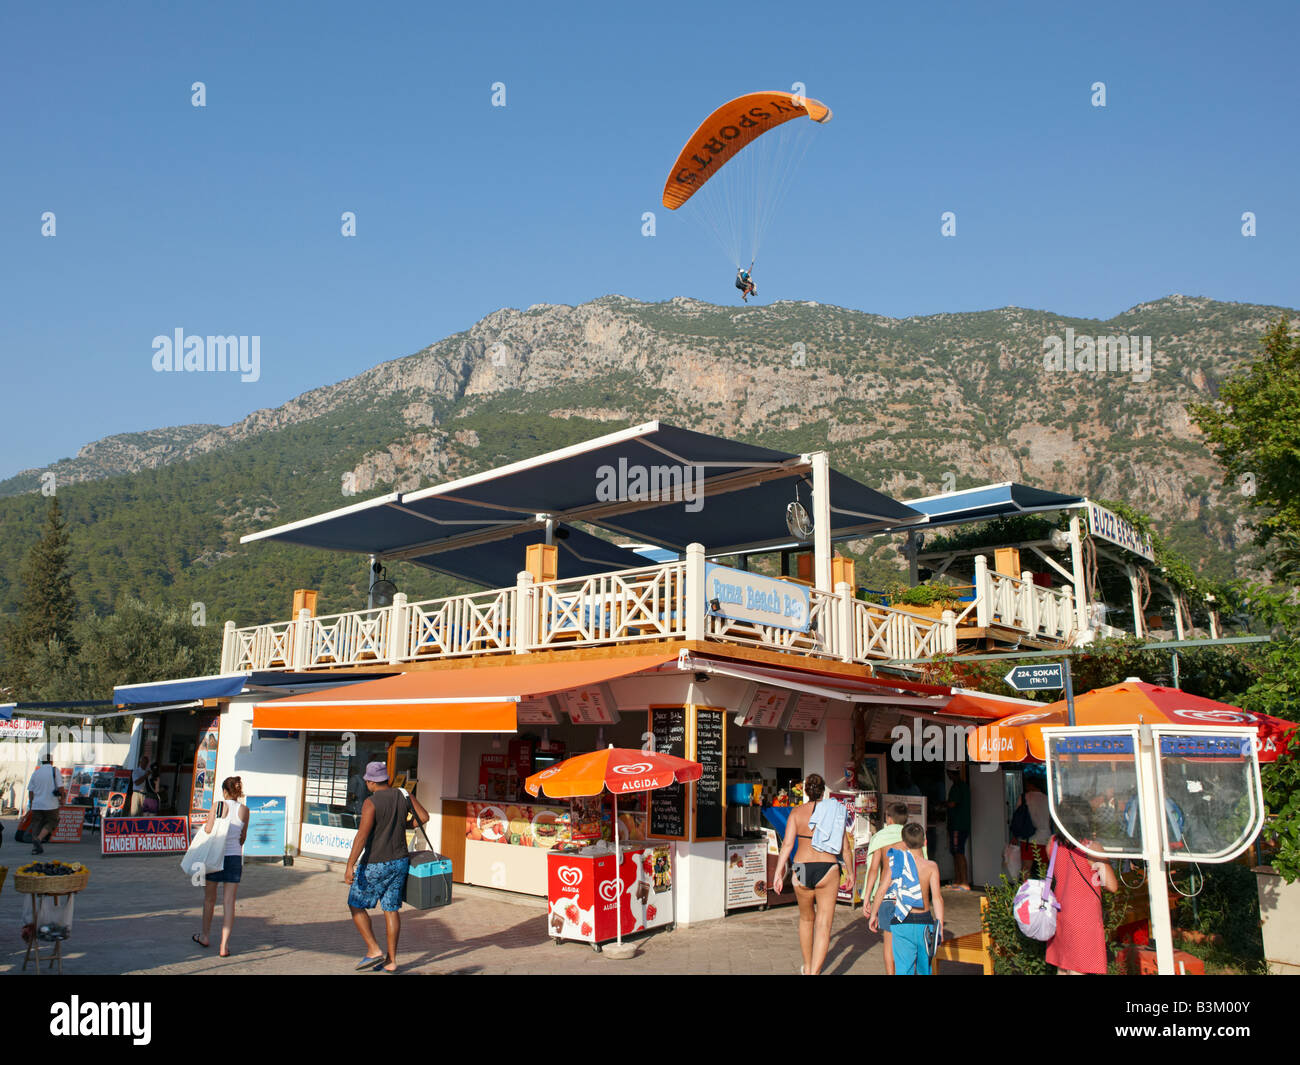 Paraglider flying above the popular Buzz Bar in the village of Oludeniz. Province of Mugla, Turkey. Stock Photo